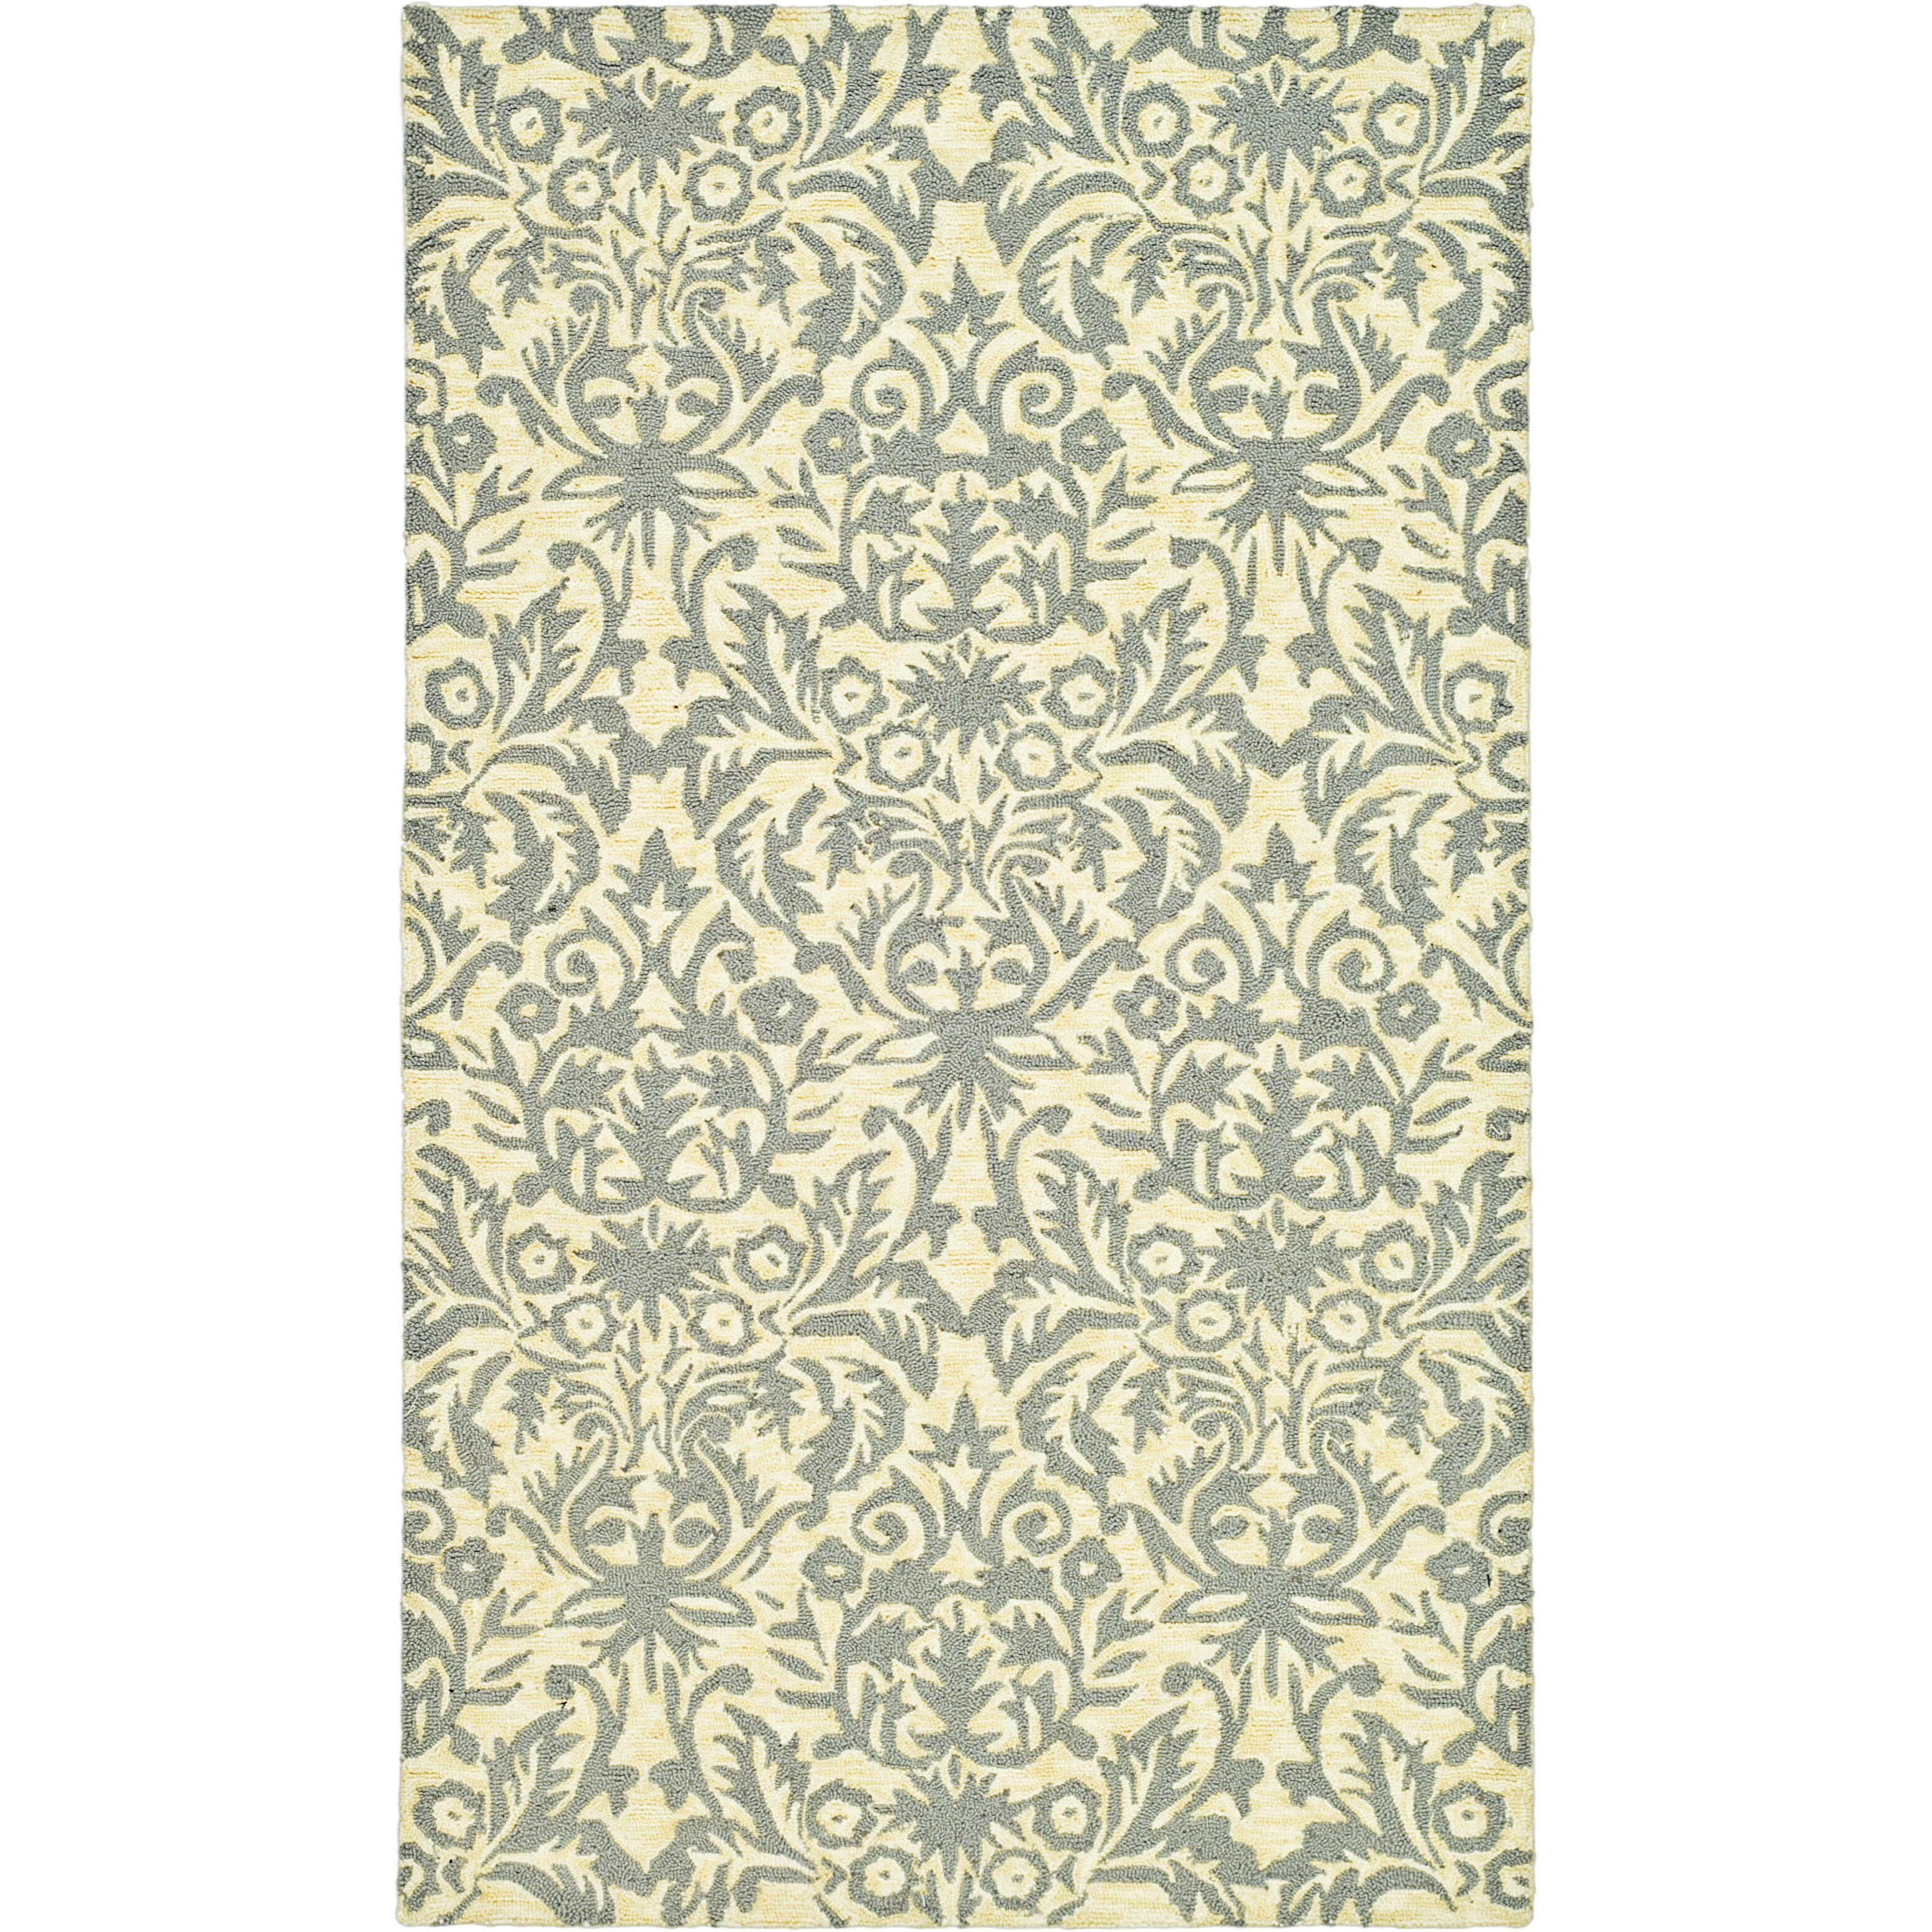 Safavieh chelsea beige yellow grey area rug reviews for Grey and tan rug